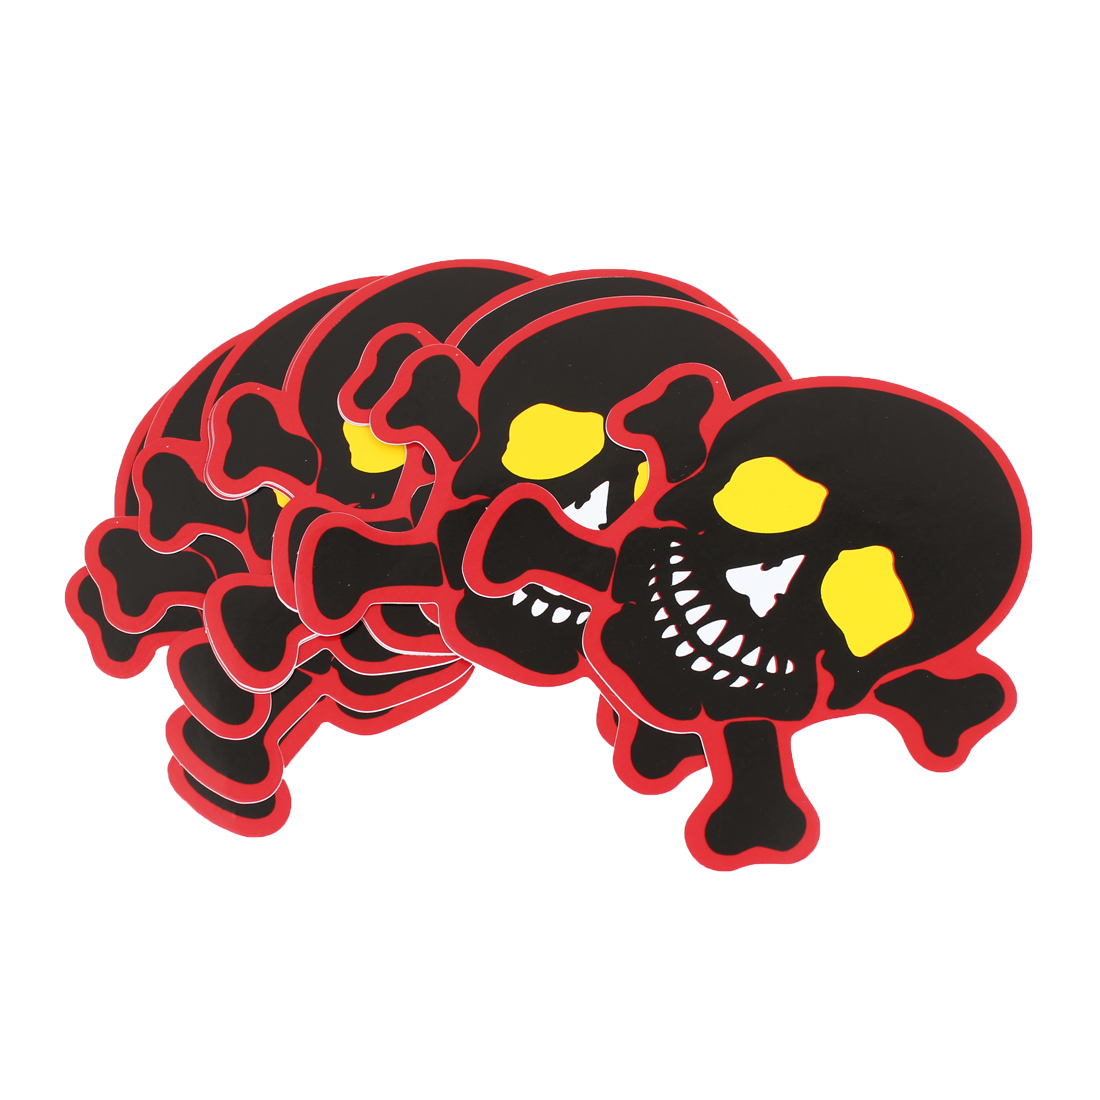 10pcs 11cm x 12cm Black Red Skull Head Pattern Sticker Decor for Car